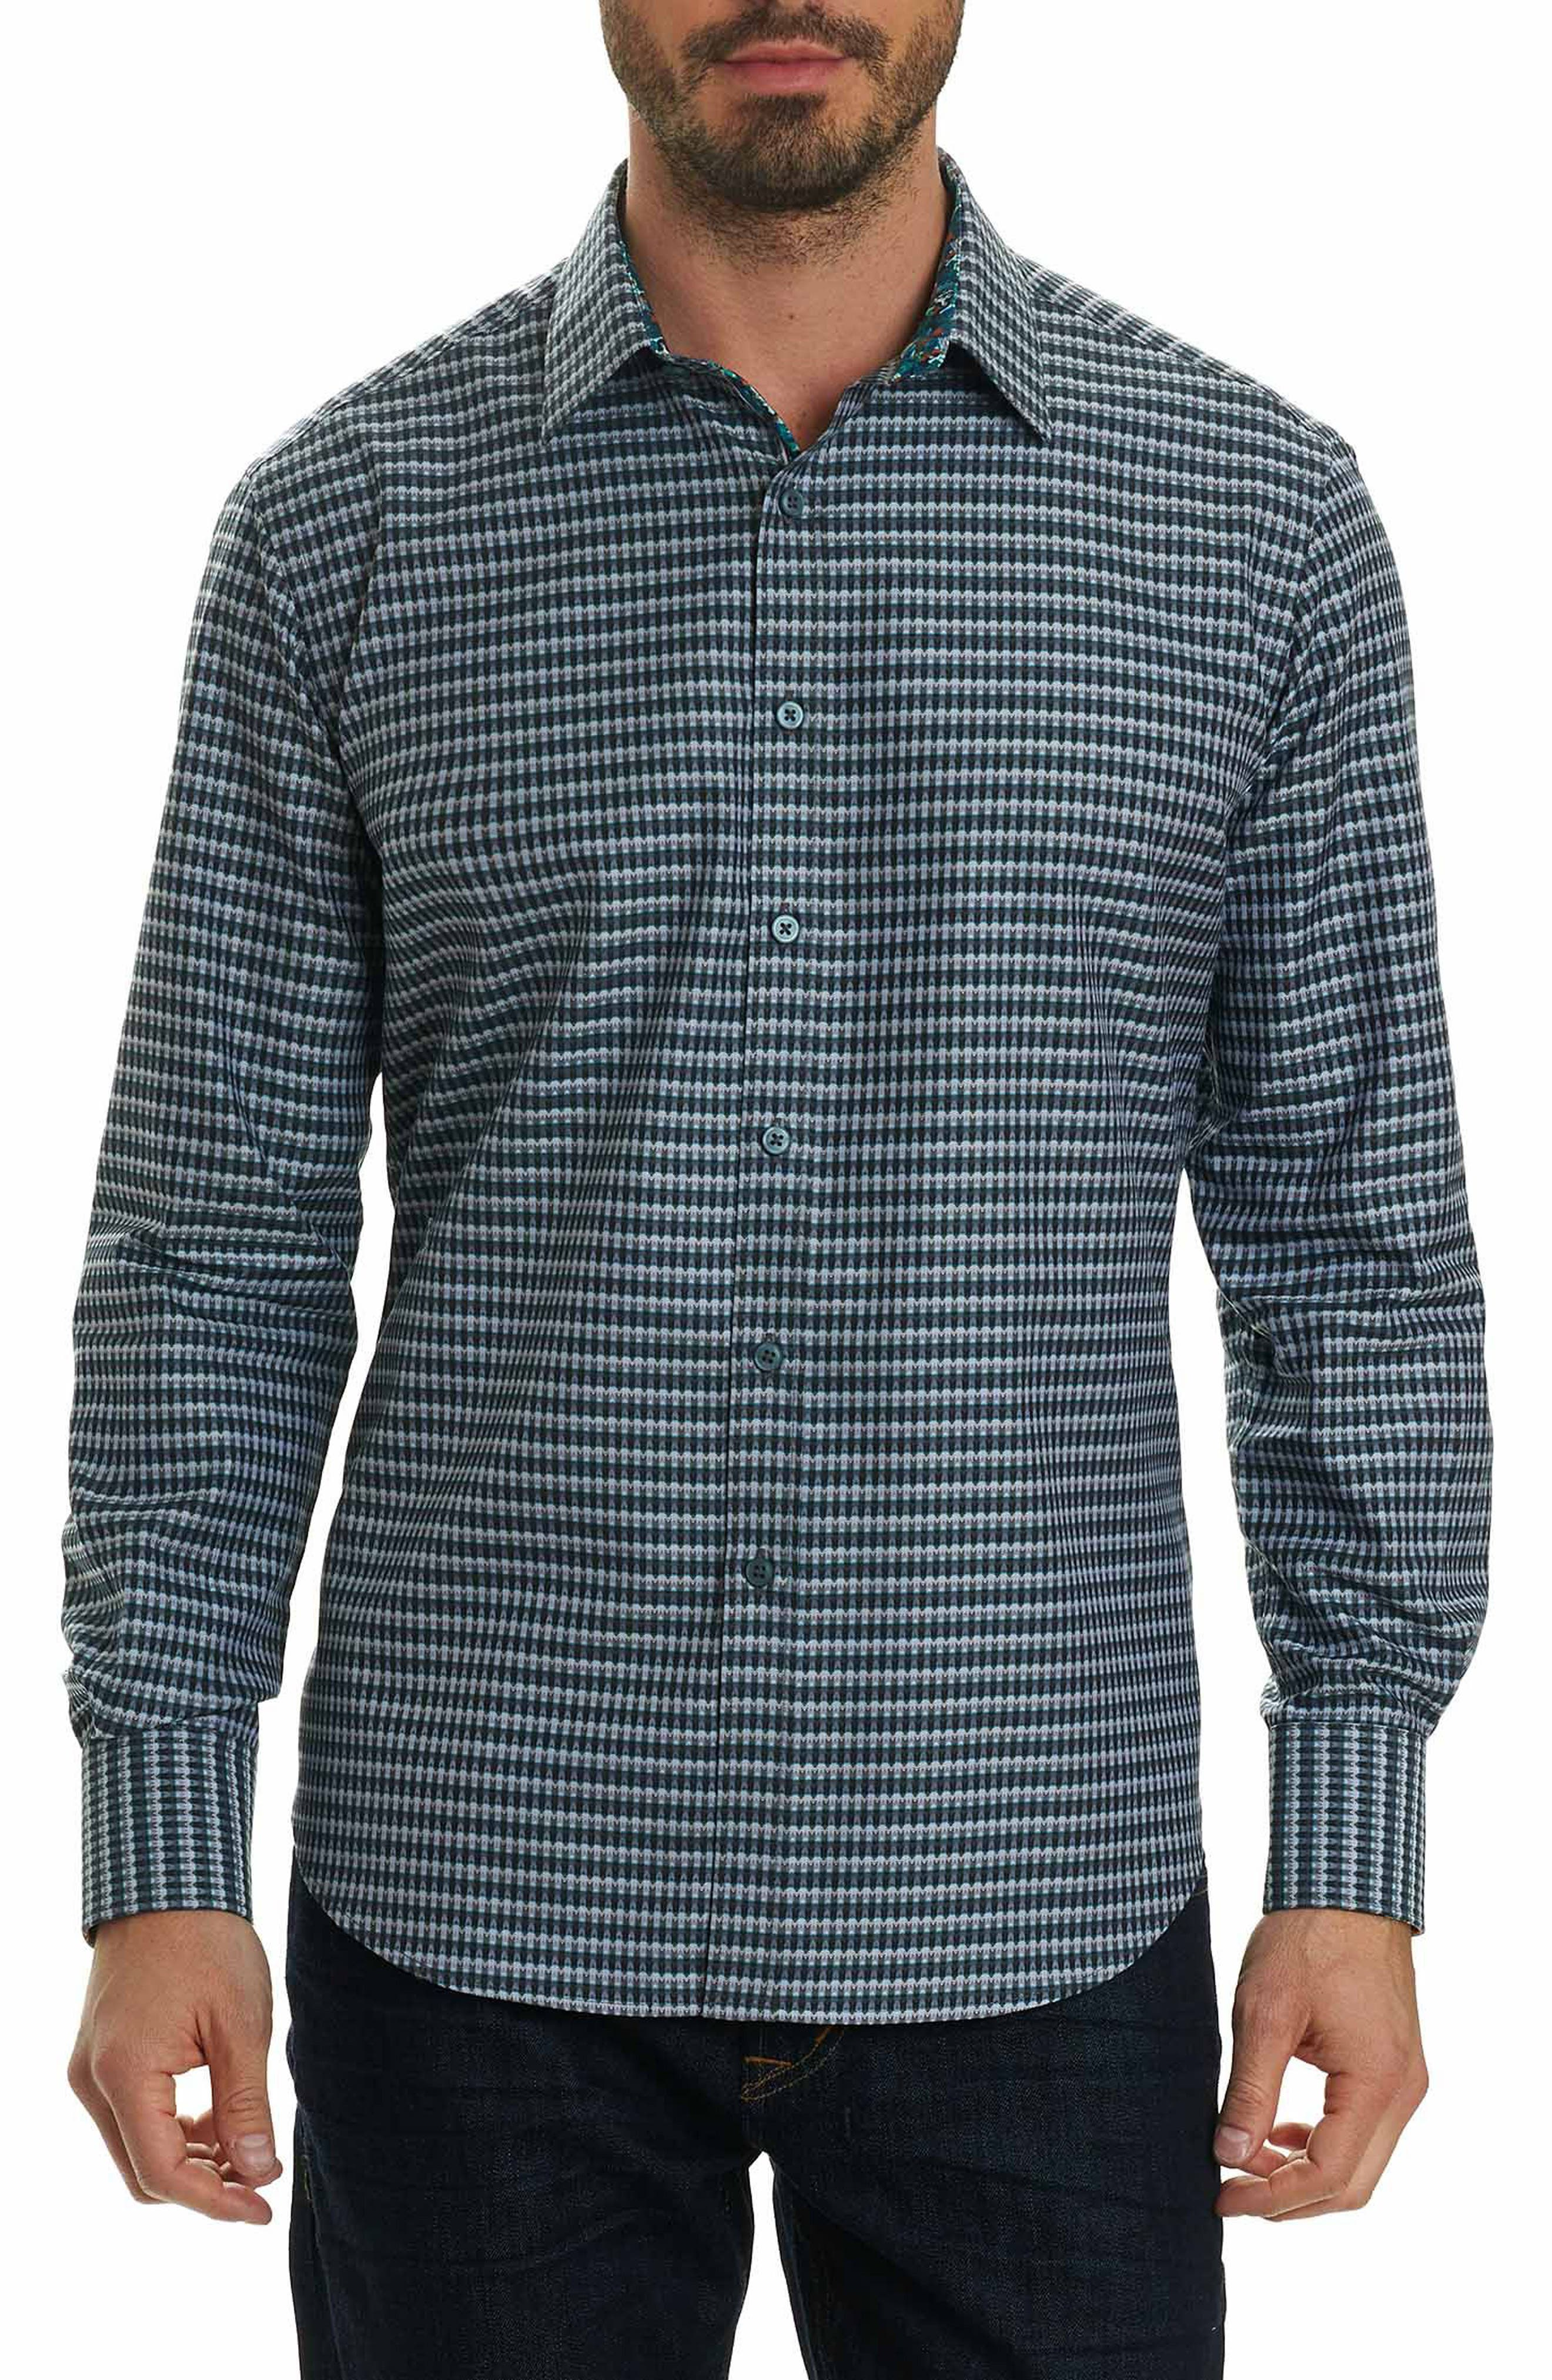 Hill Punch Classic Fit Print Sport Shirt,                         Main,                         color, 063